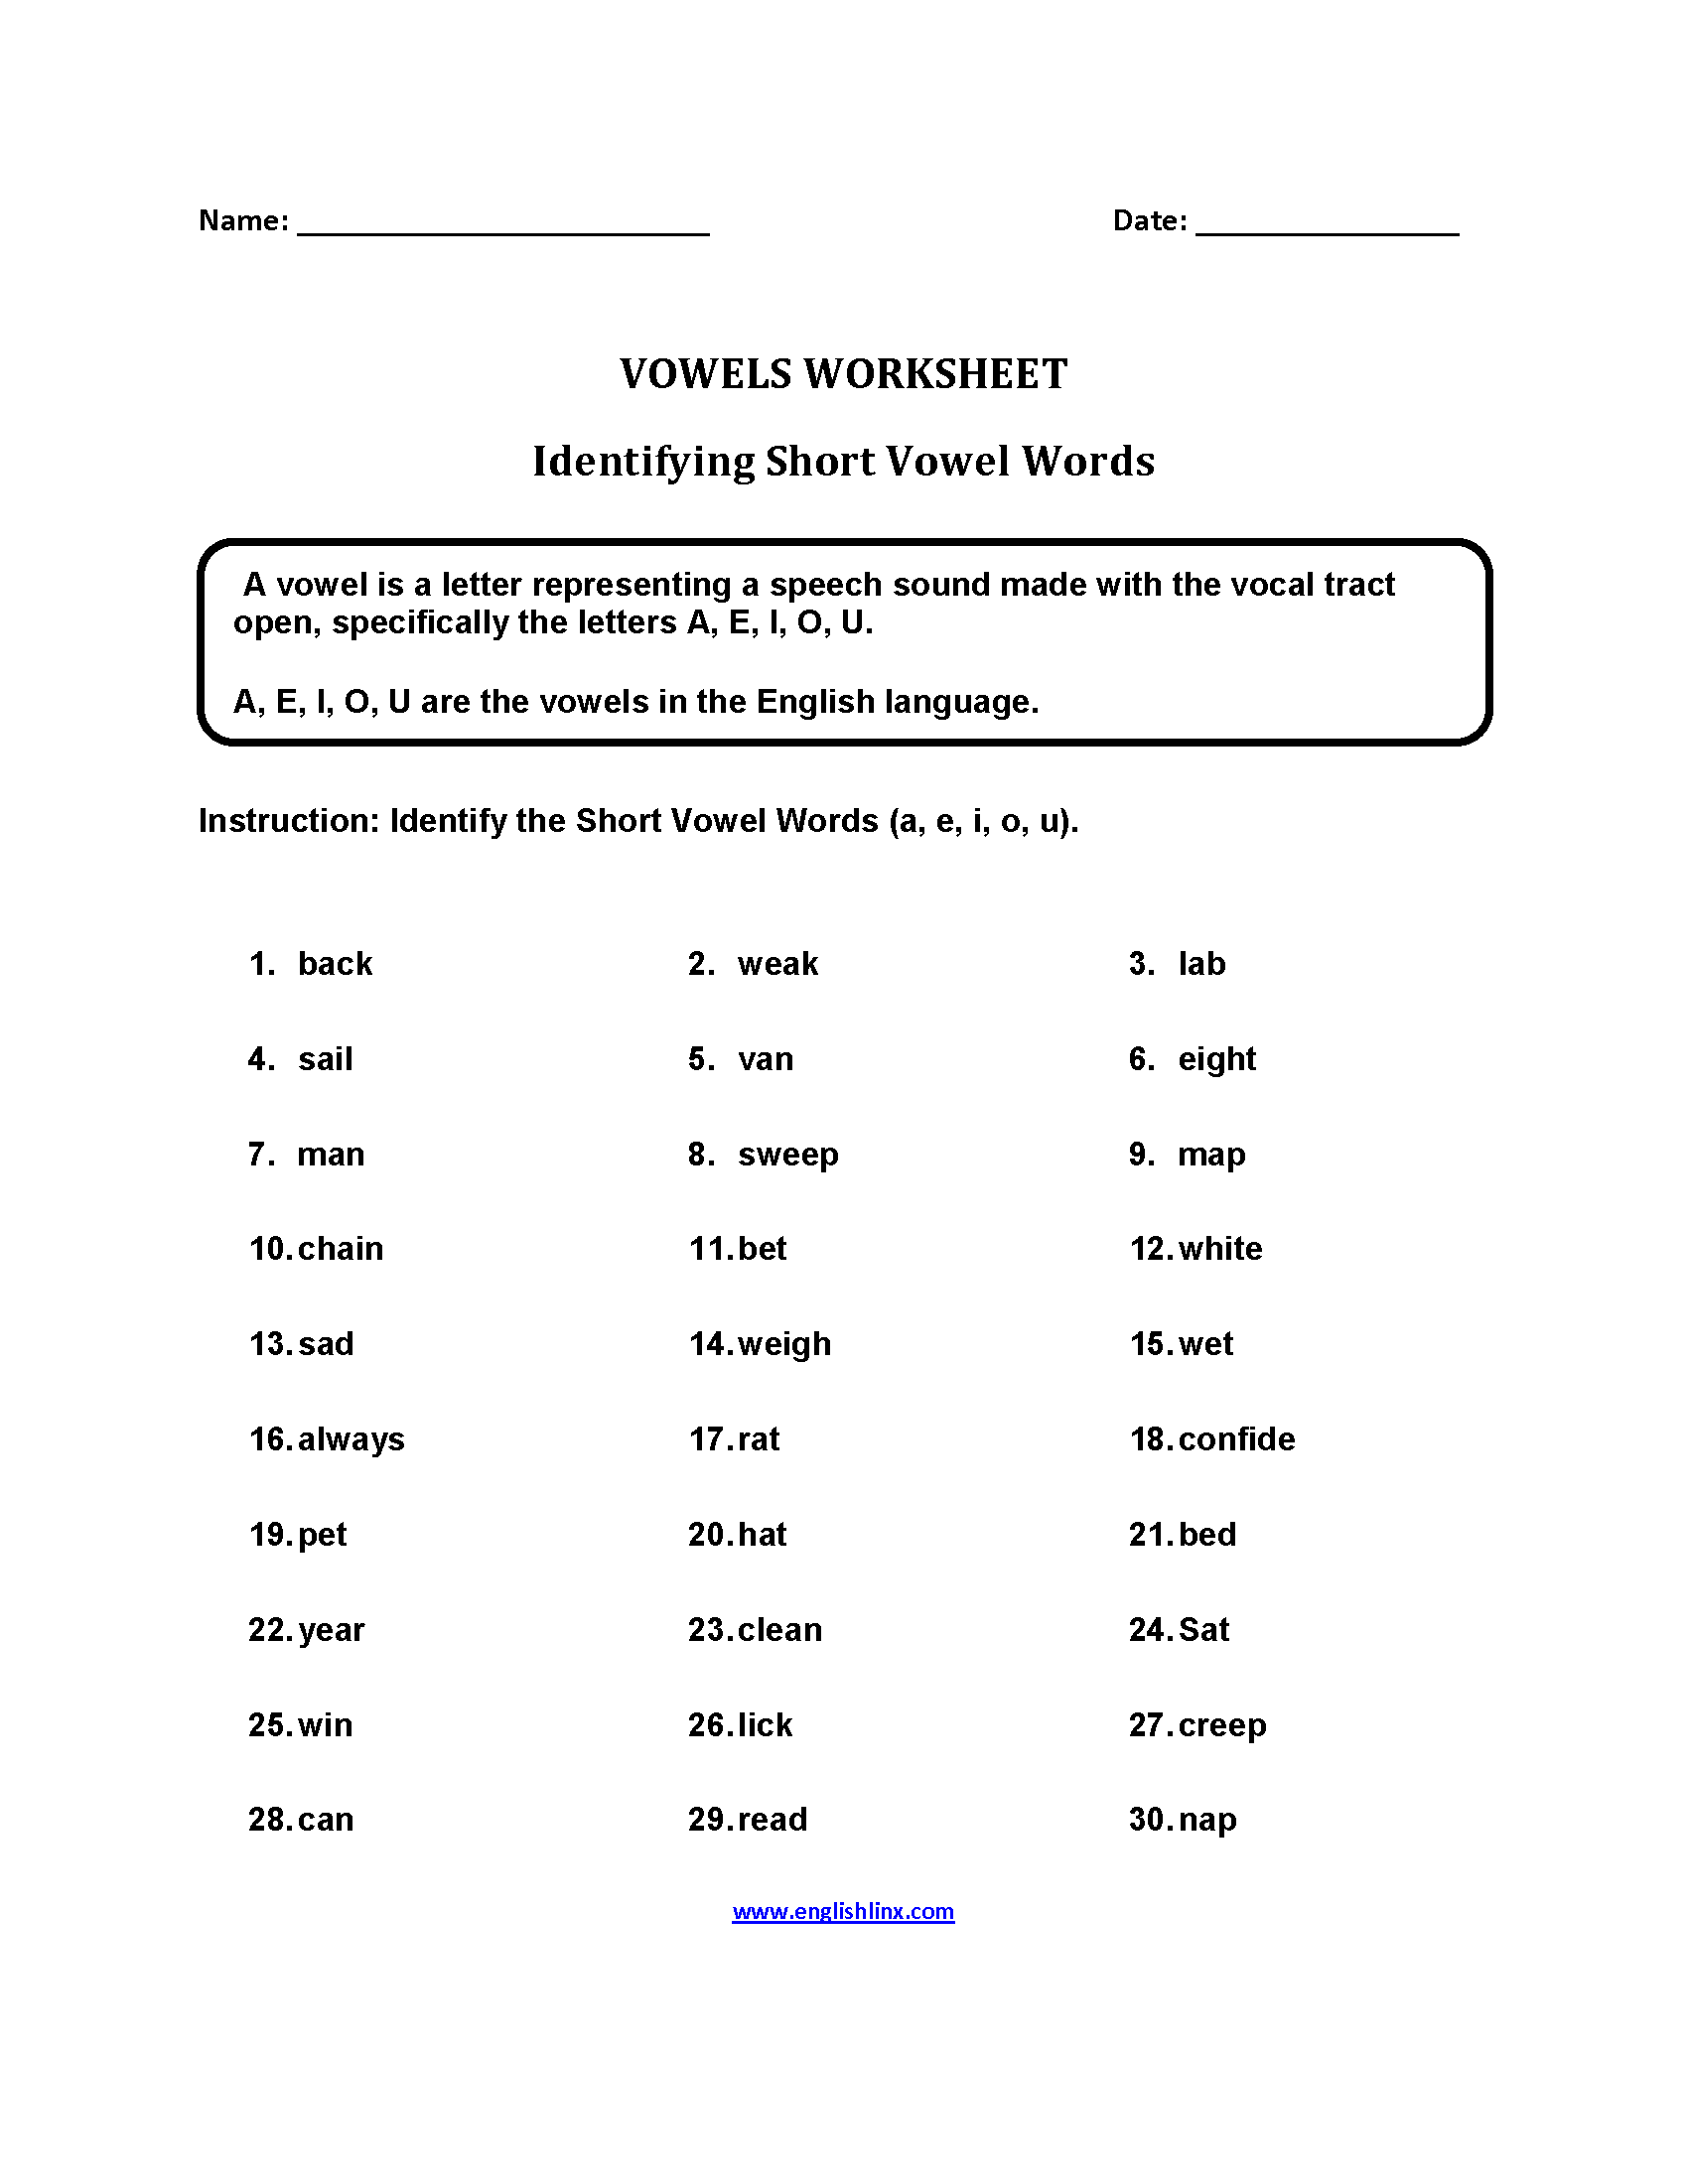 Worksheets Short Vowel Worksheets vowels worksheets short vowel words worksheets